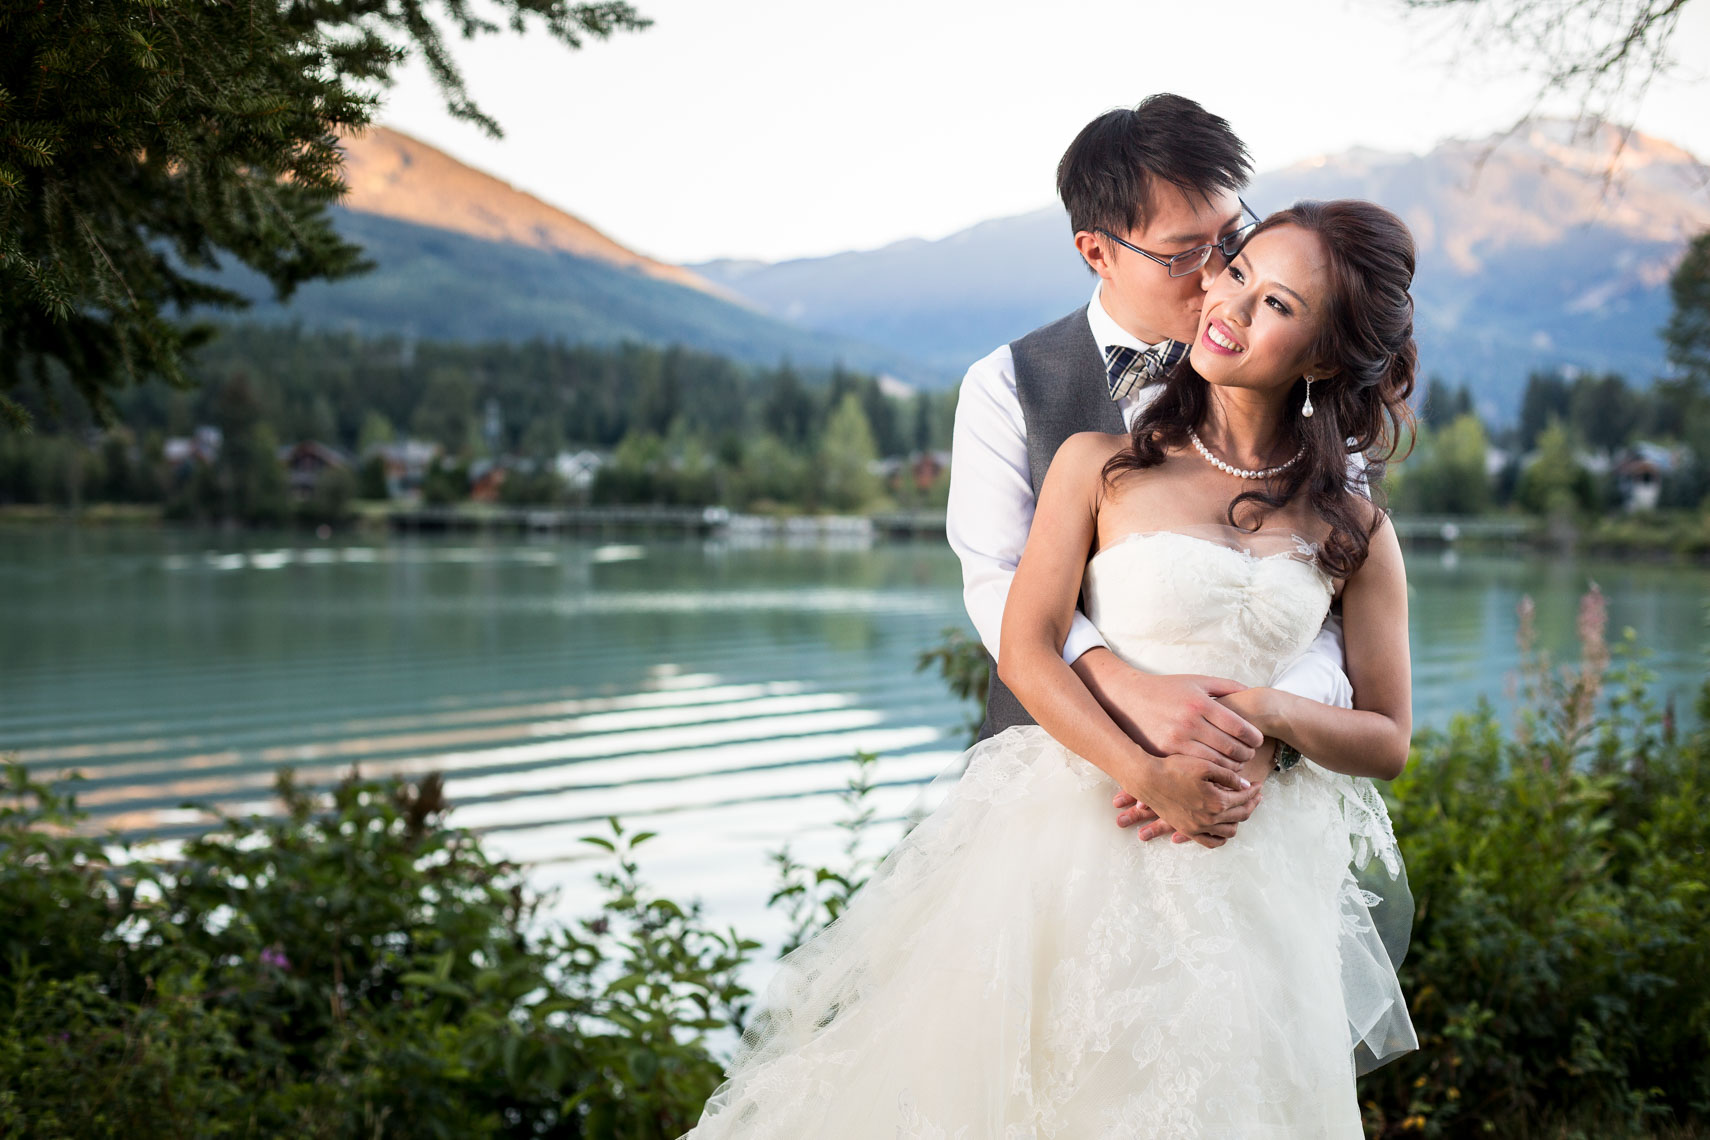 Bride and groom embrace near lake at nicklaus north wedding venue in Whistler